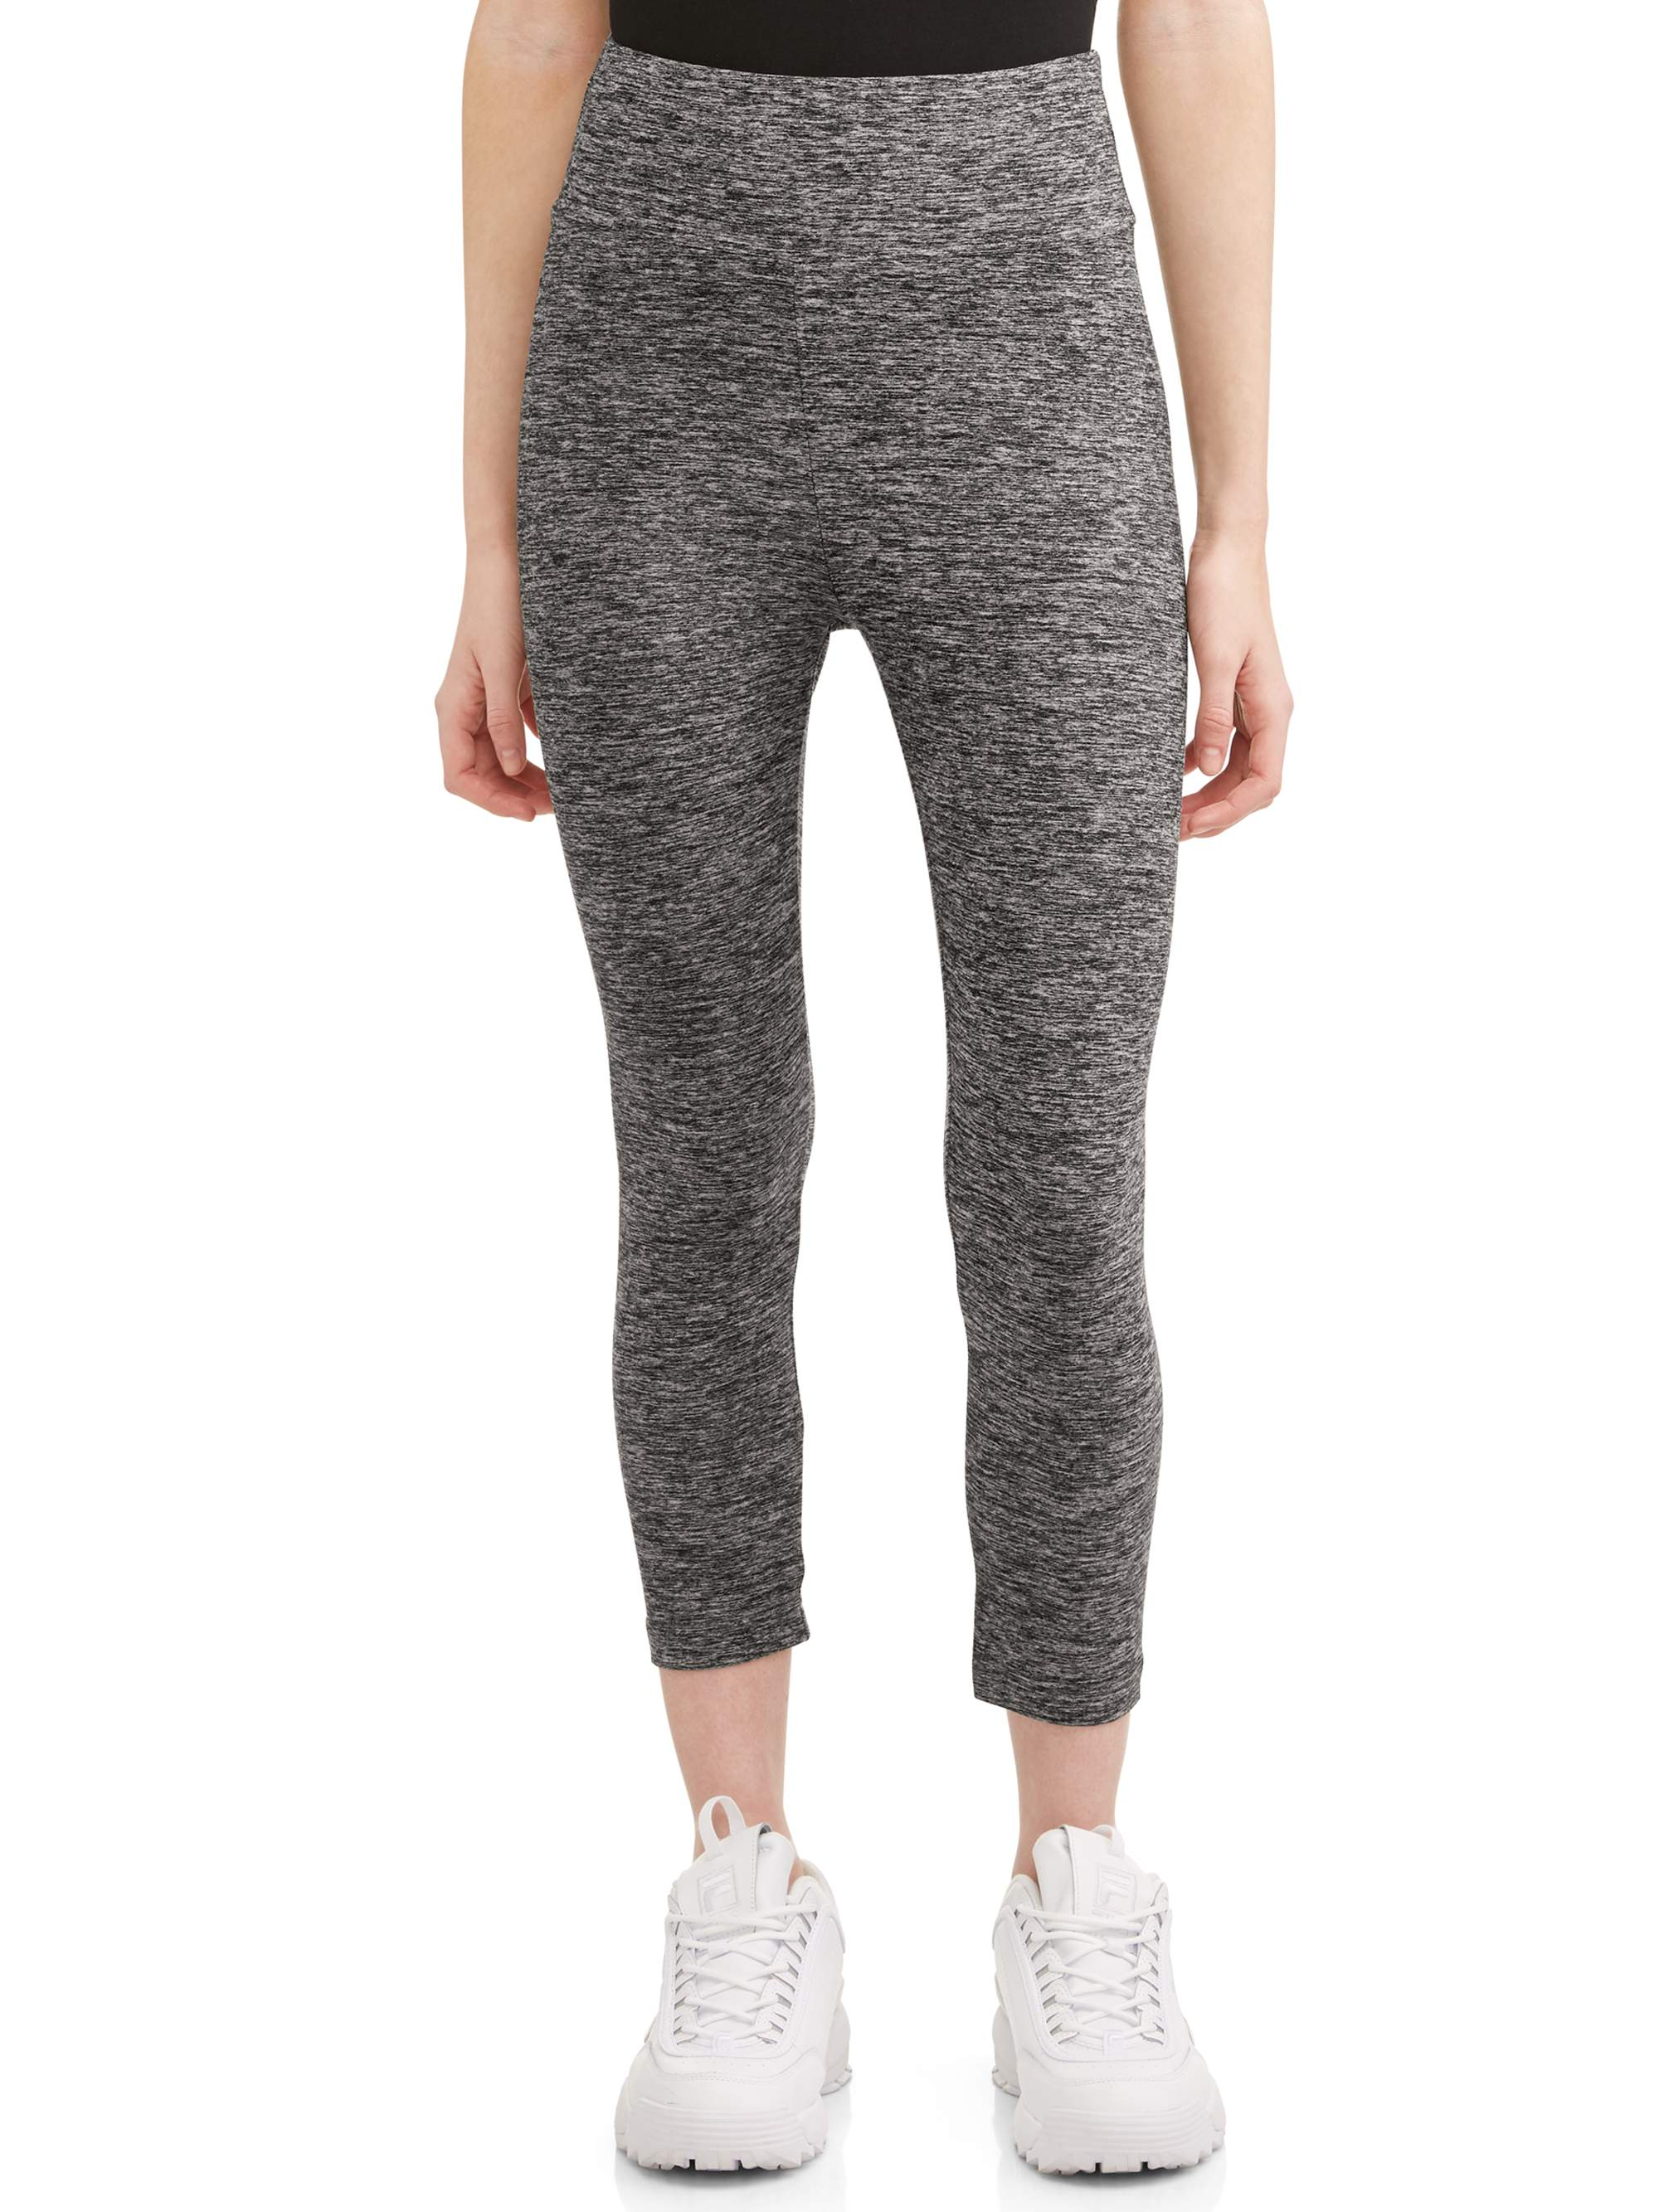 Juniors' Sueded Jersey Capri Leggings (Up to 2XL!)